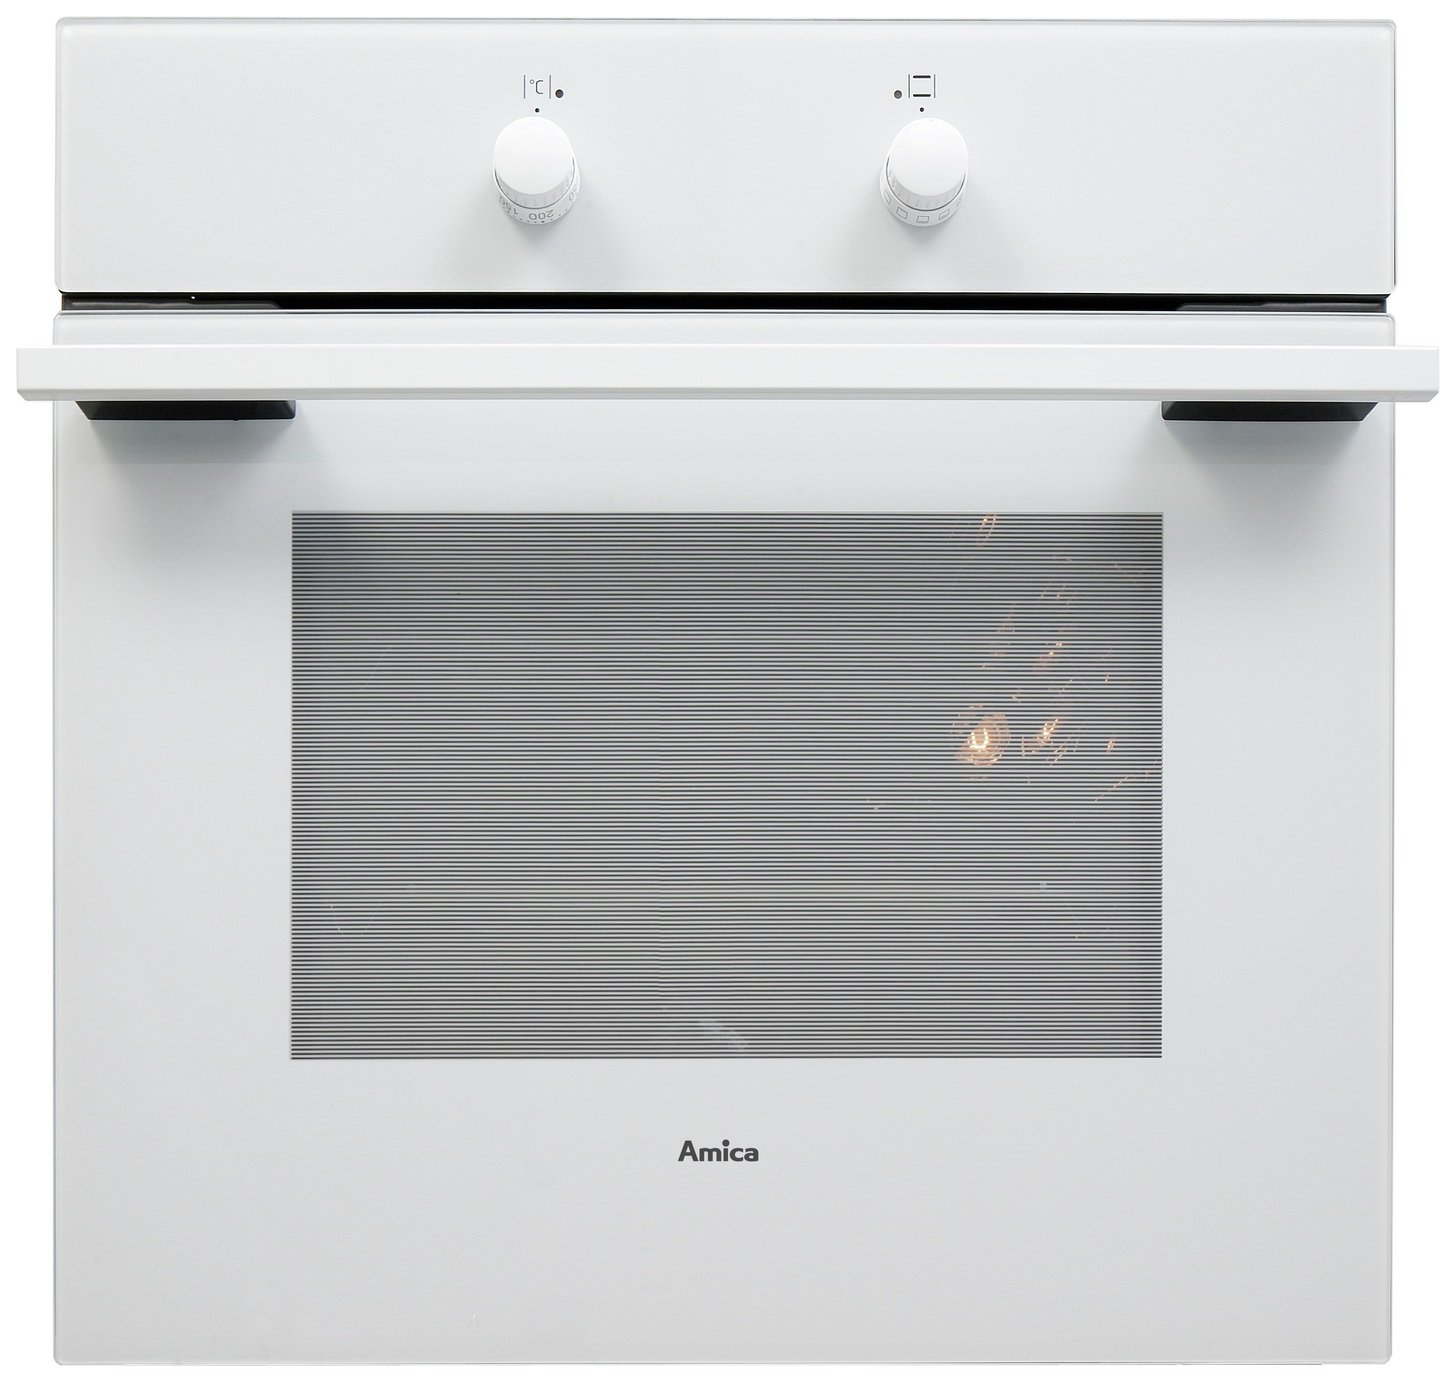 Image of Amica 10533W Built-In Oven - White.